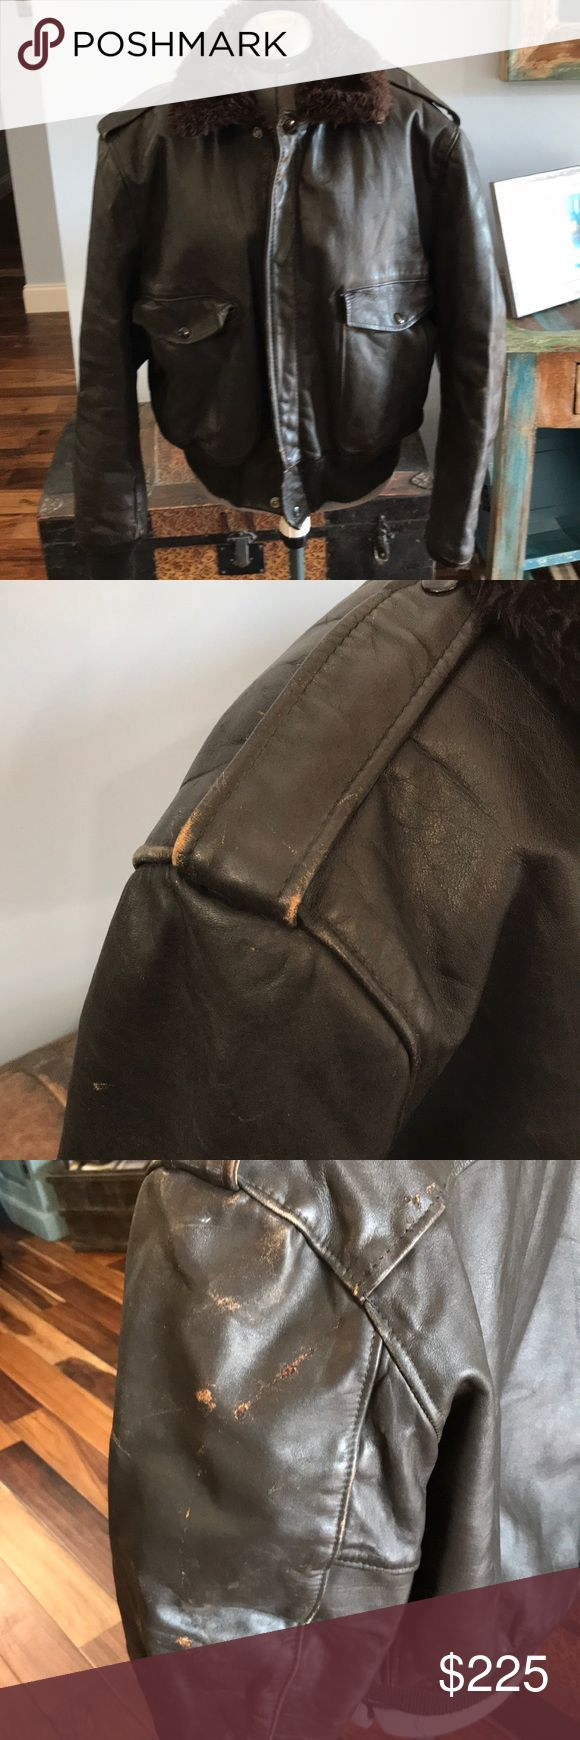 Vintage Vietnam era 1970's Schott Flight Jacket I-S-674-M-S Flight jacket. Brown leather flight bomber jacket. Few scuffs but great condition for how old this jacket is! Size 46 Schott NYC Jackets & Coats